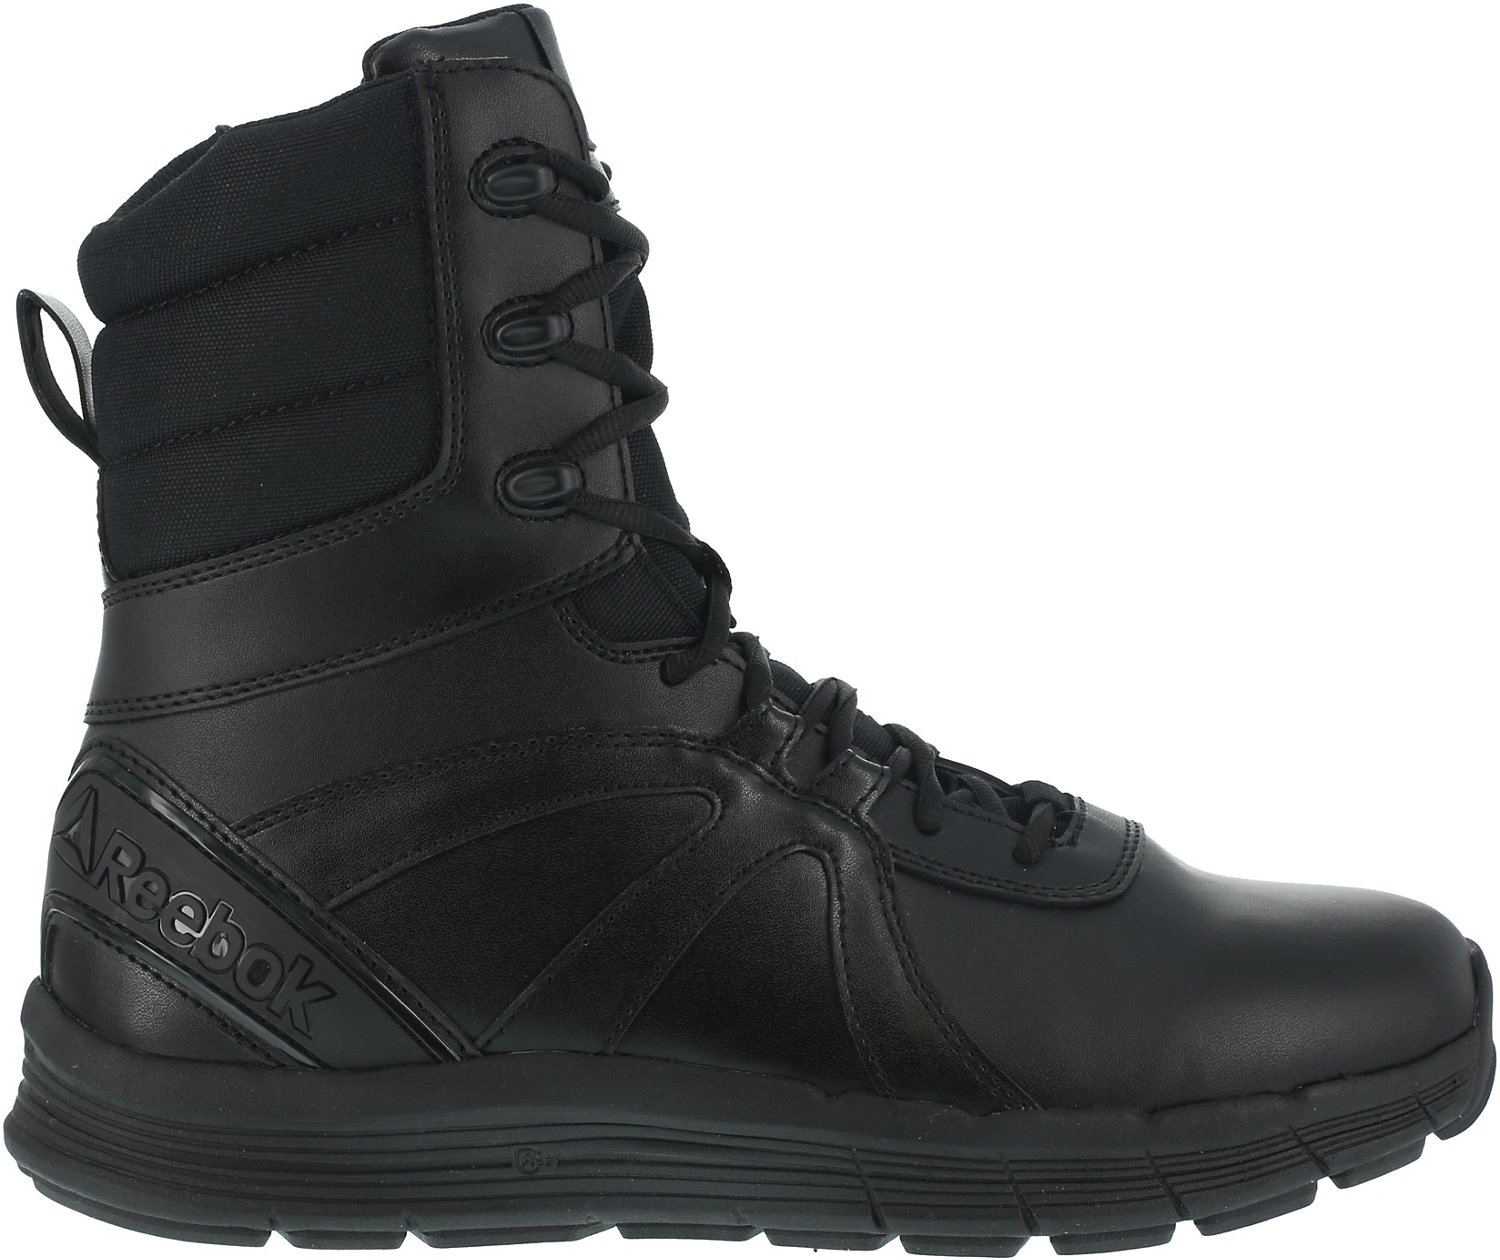 d3a3783087abfb Display product reviews for Reebok Men s 8 in Guide Tactical Boots